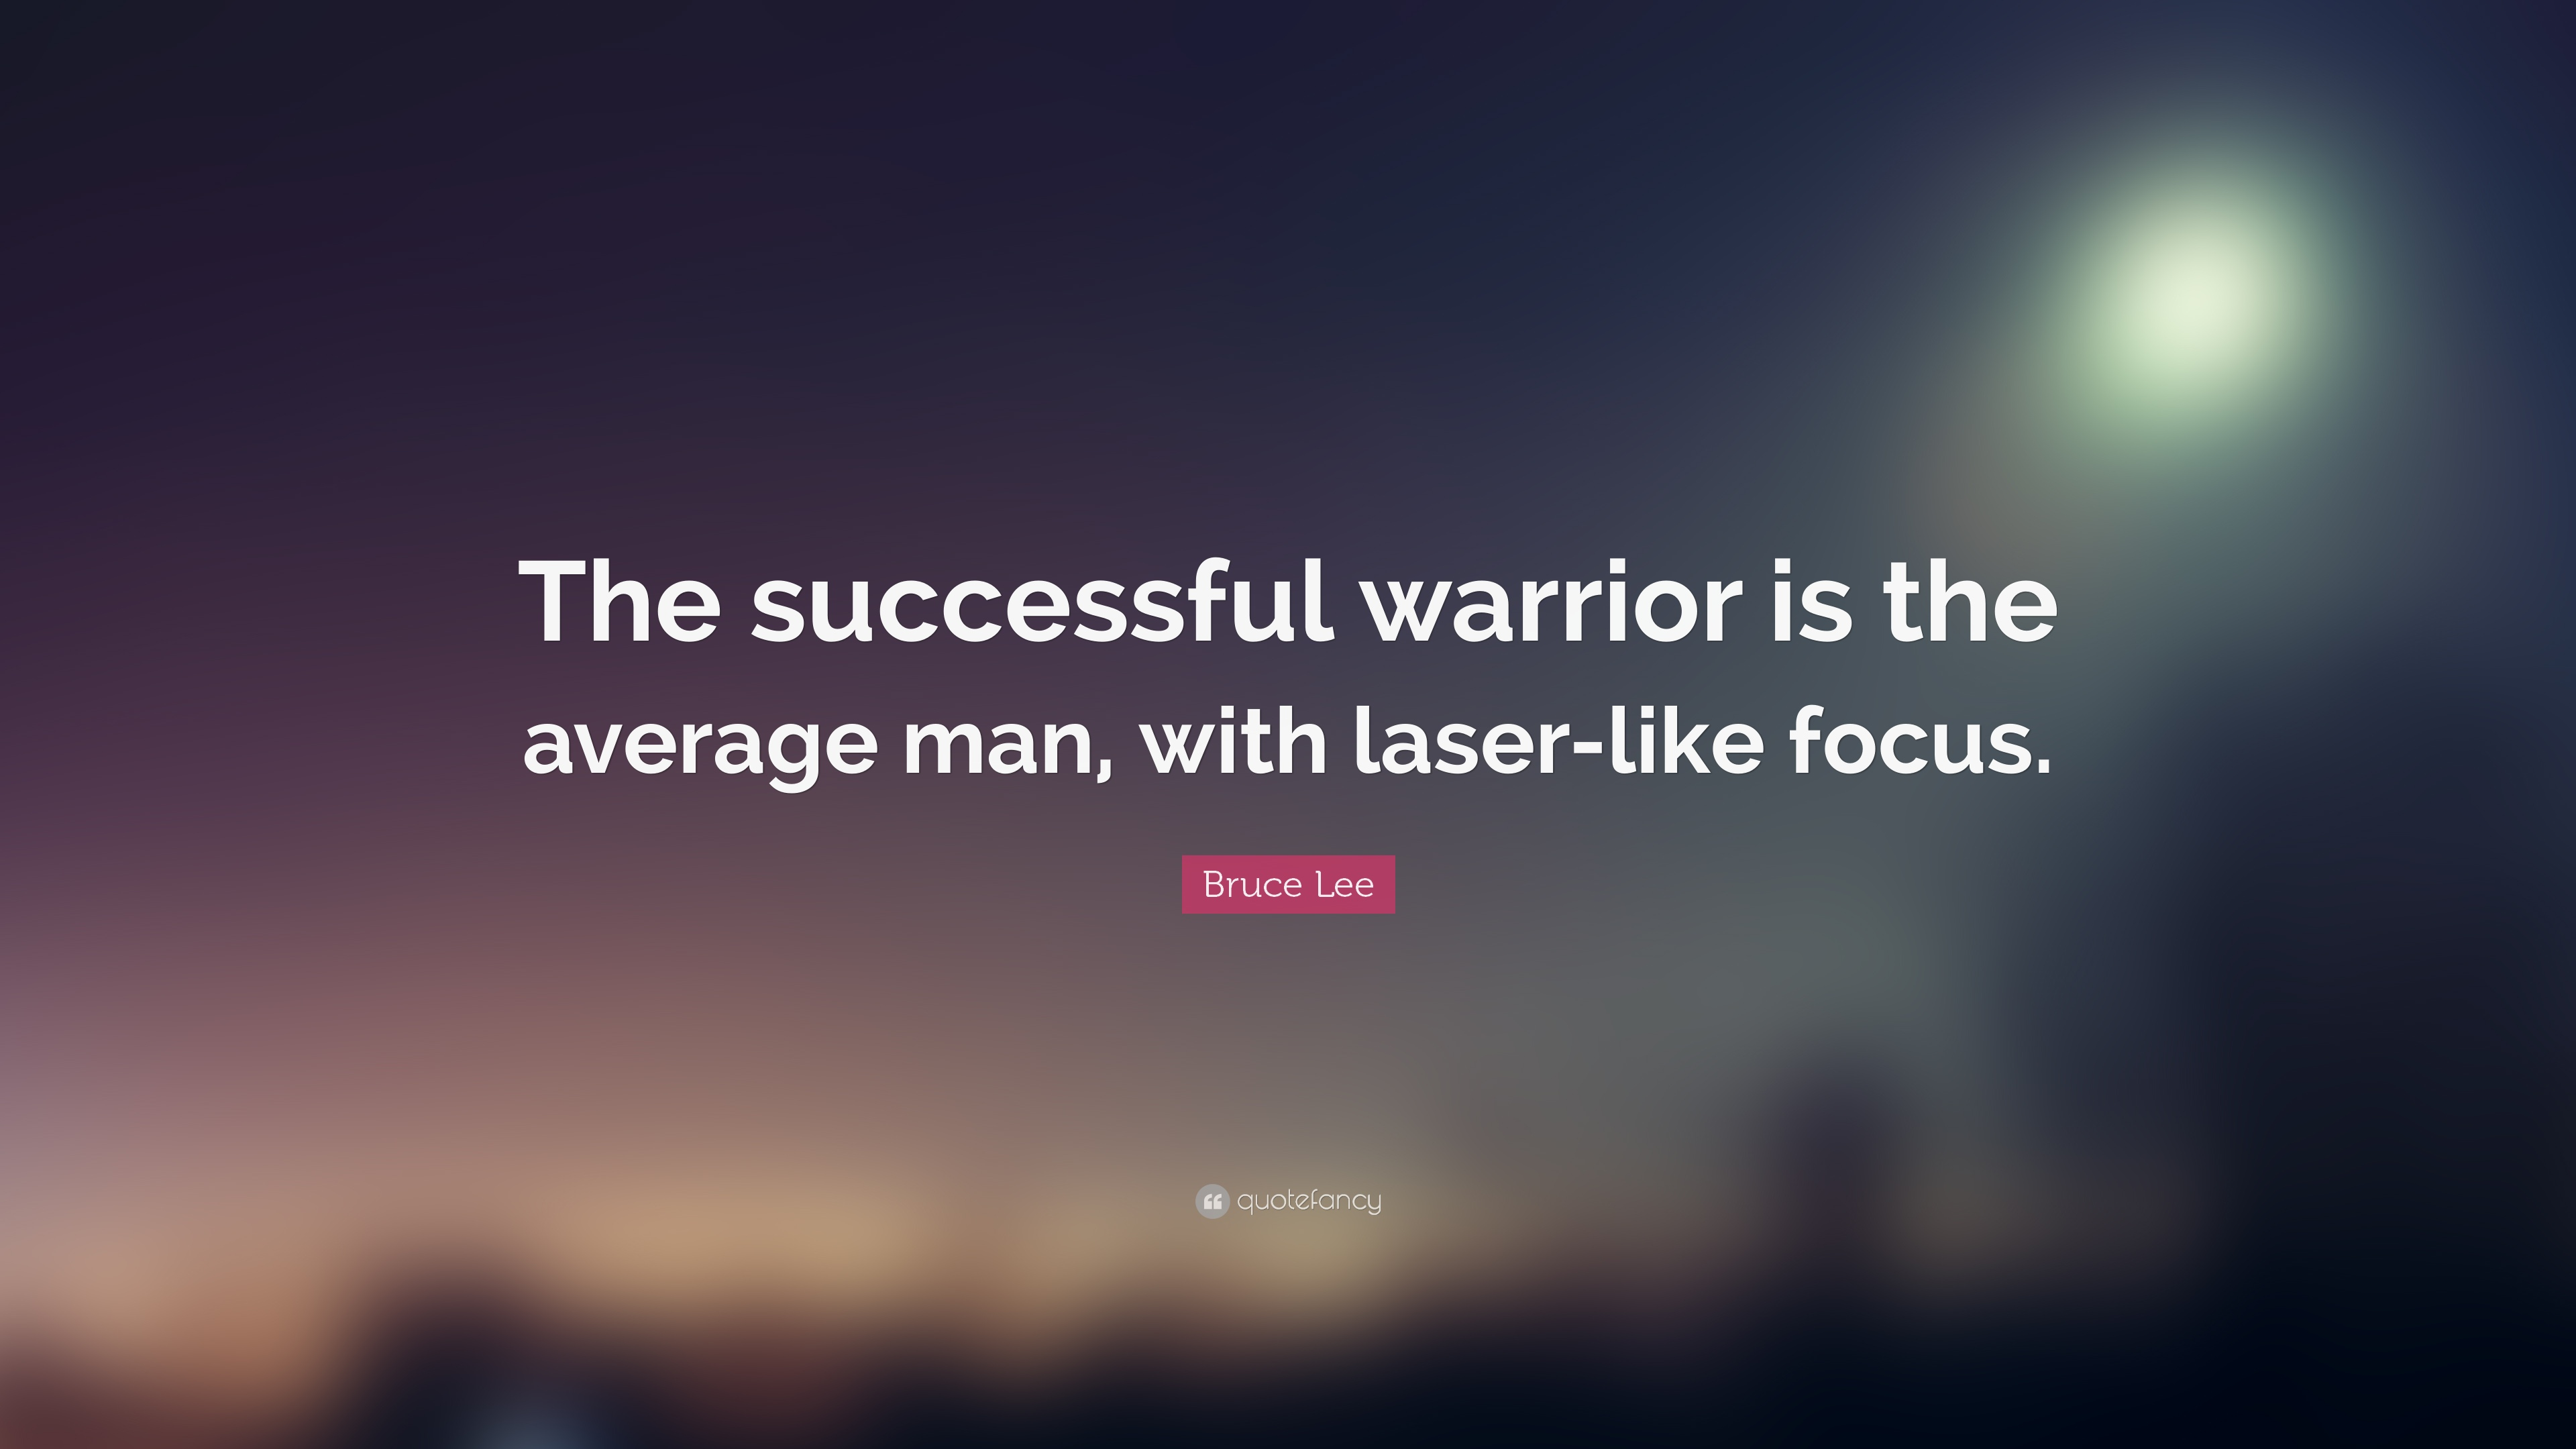 Warrior Quote Wallpapers Bruce Lee Quote The Successful Warrior Is The Average